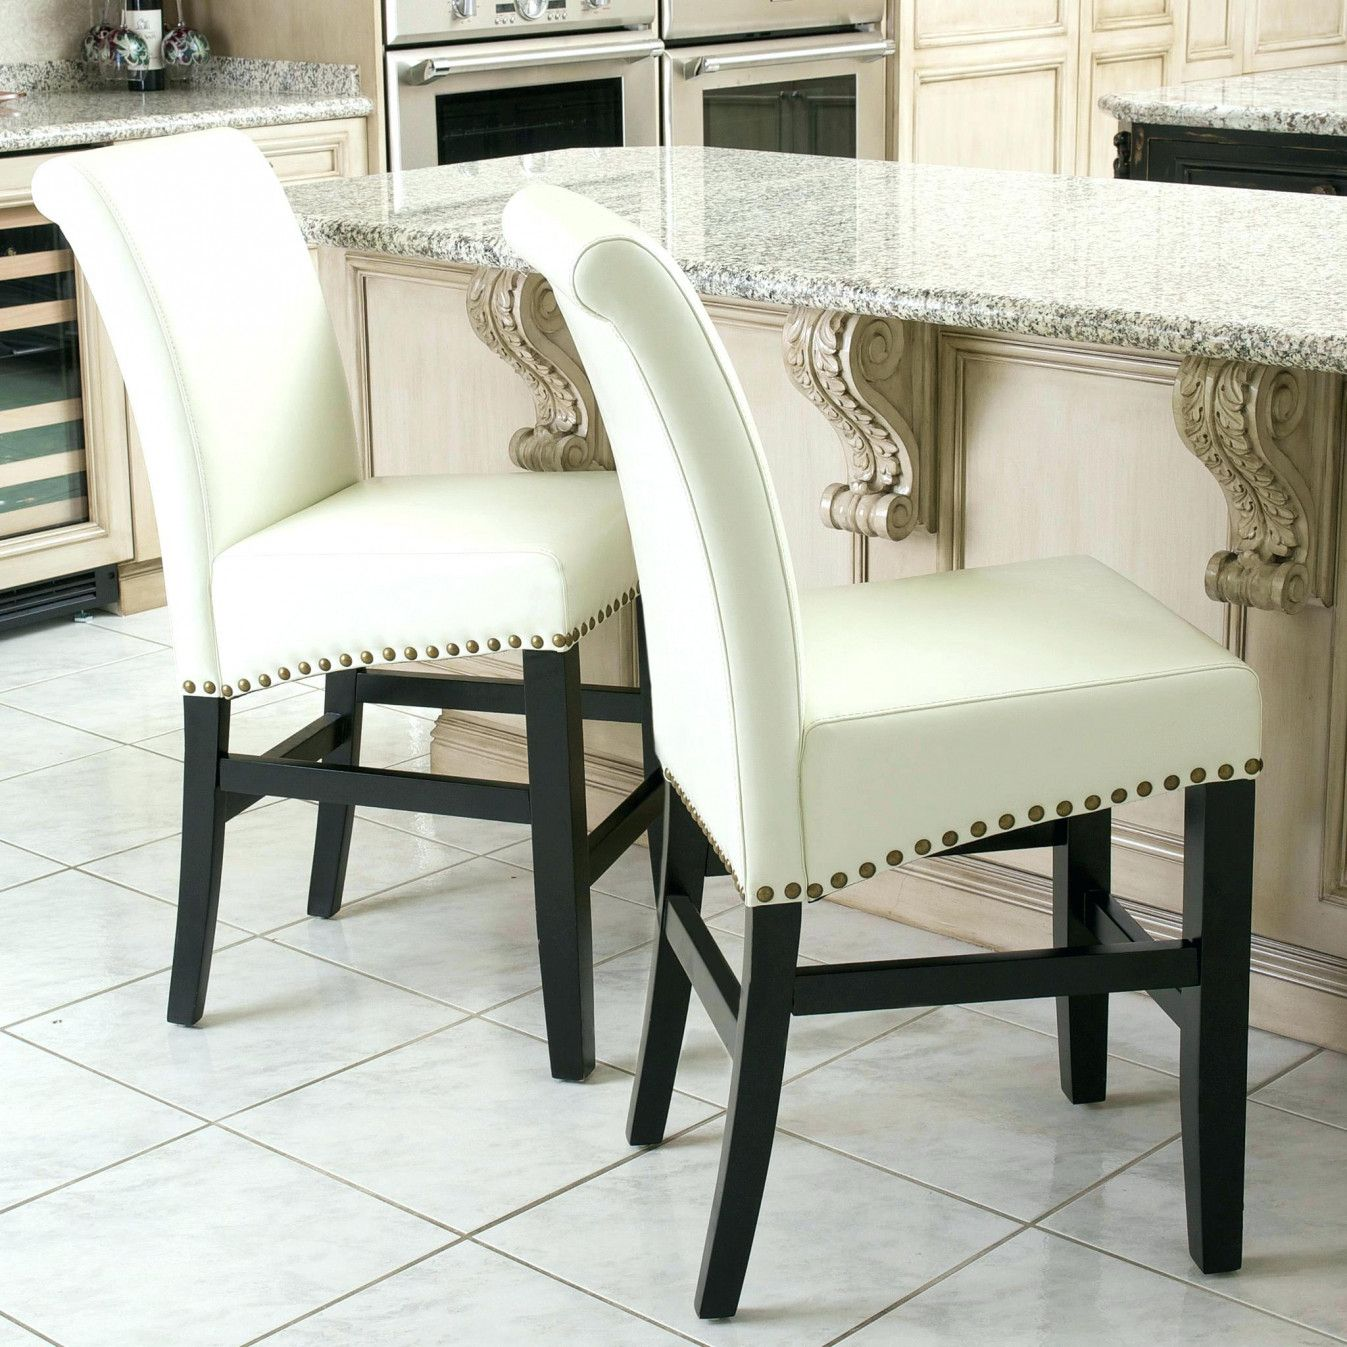 55 Ivory Leather Dining Room Chairs  Modern Rustic Furniture Mesmerizing Ivory Leather Dining Room Chairs Design Ideas